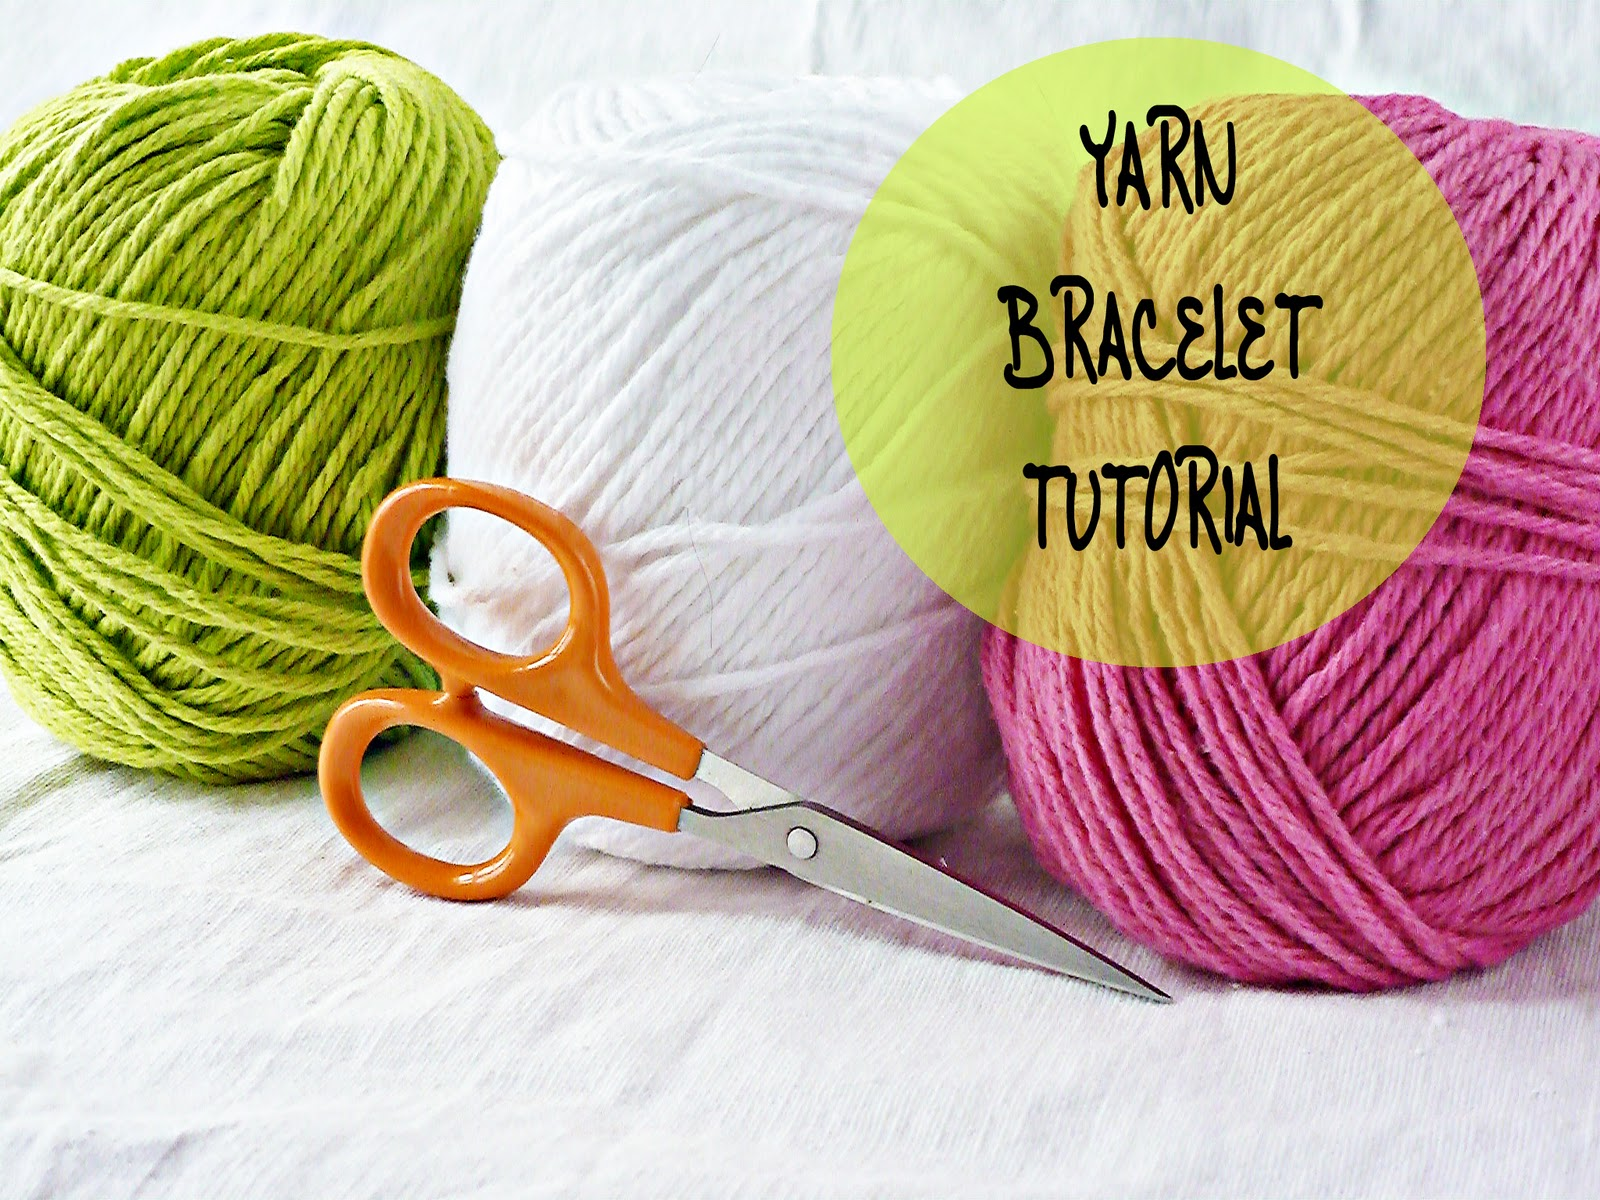 Yarn Crafts : project here this was one of my favorite crafts to make because it is